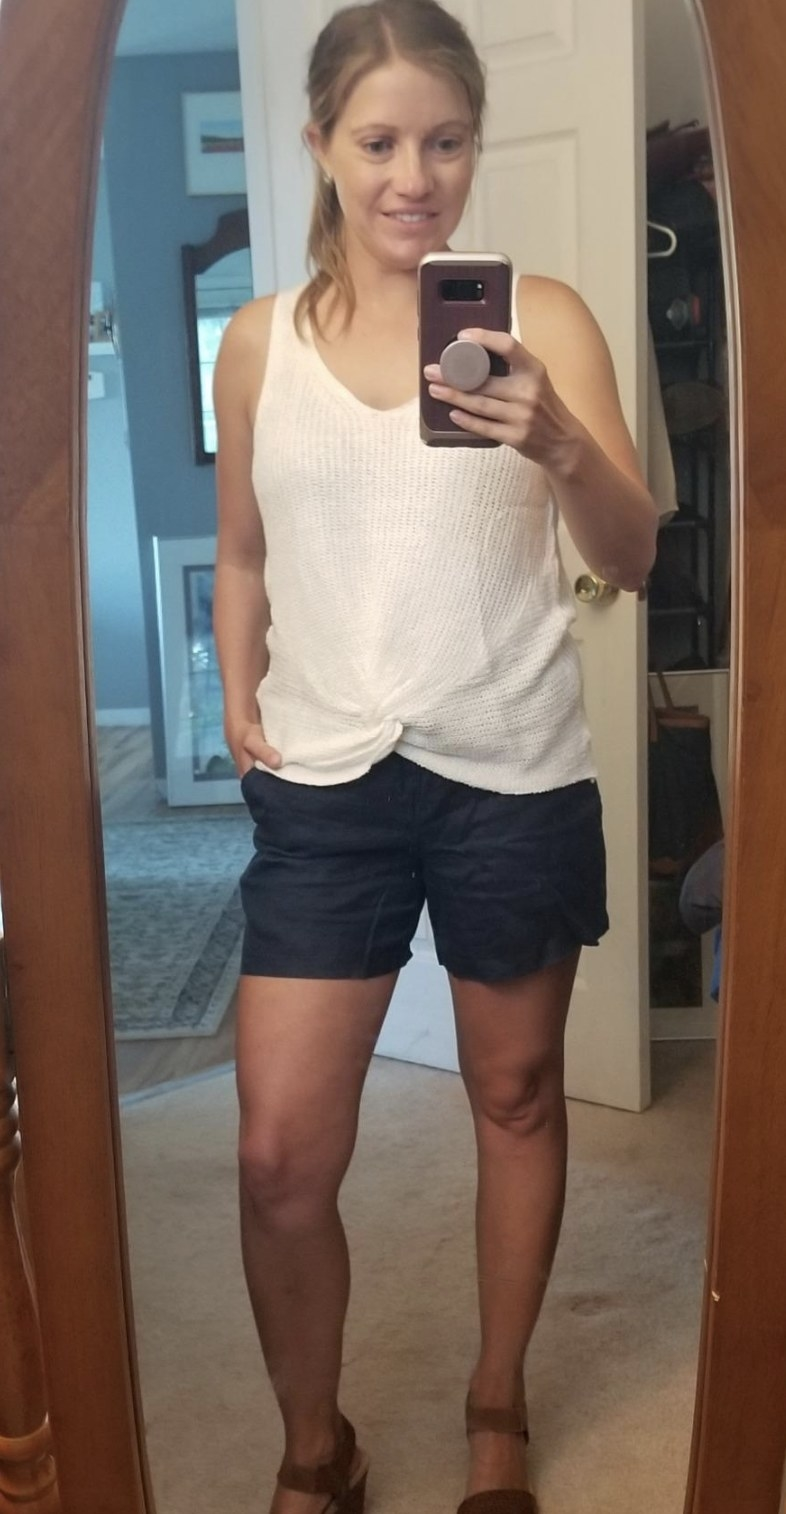 a person wearing navy linen shorts with a white tank top